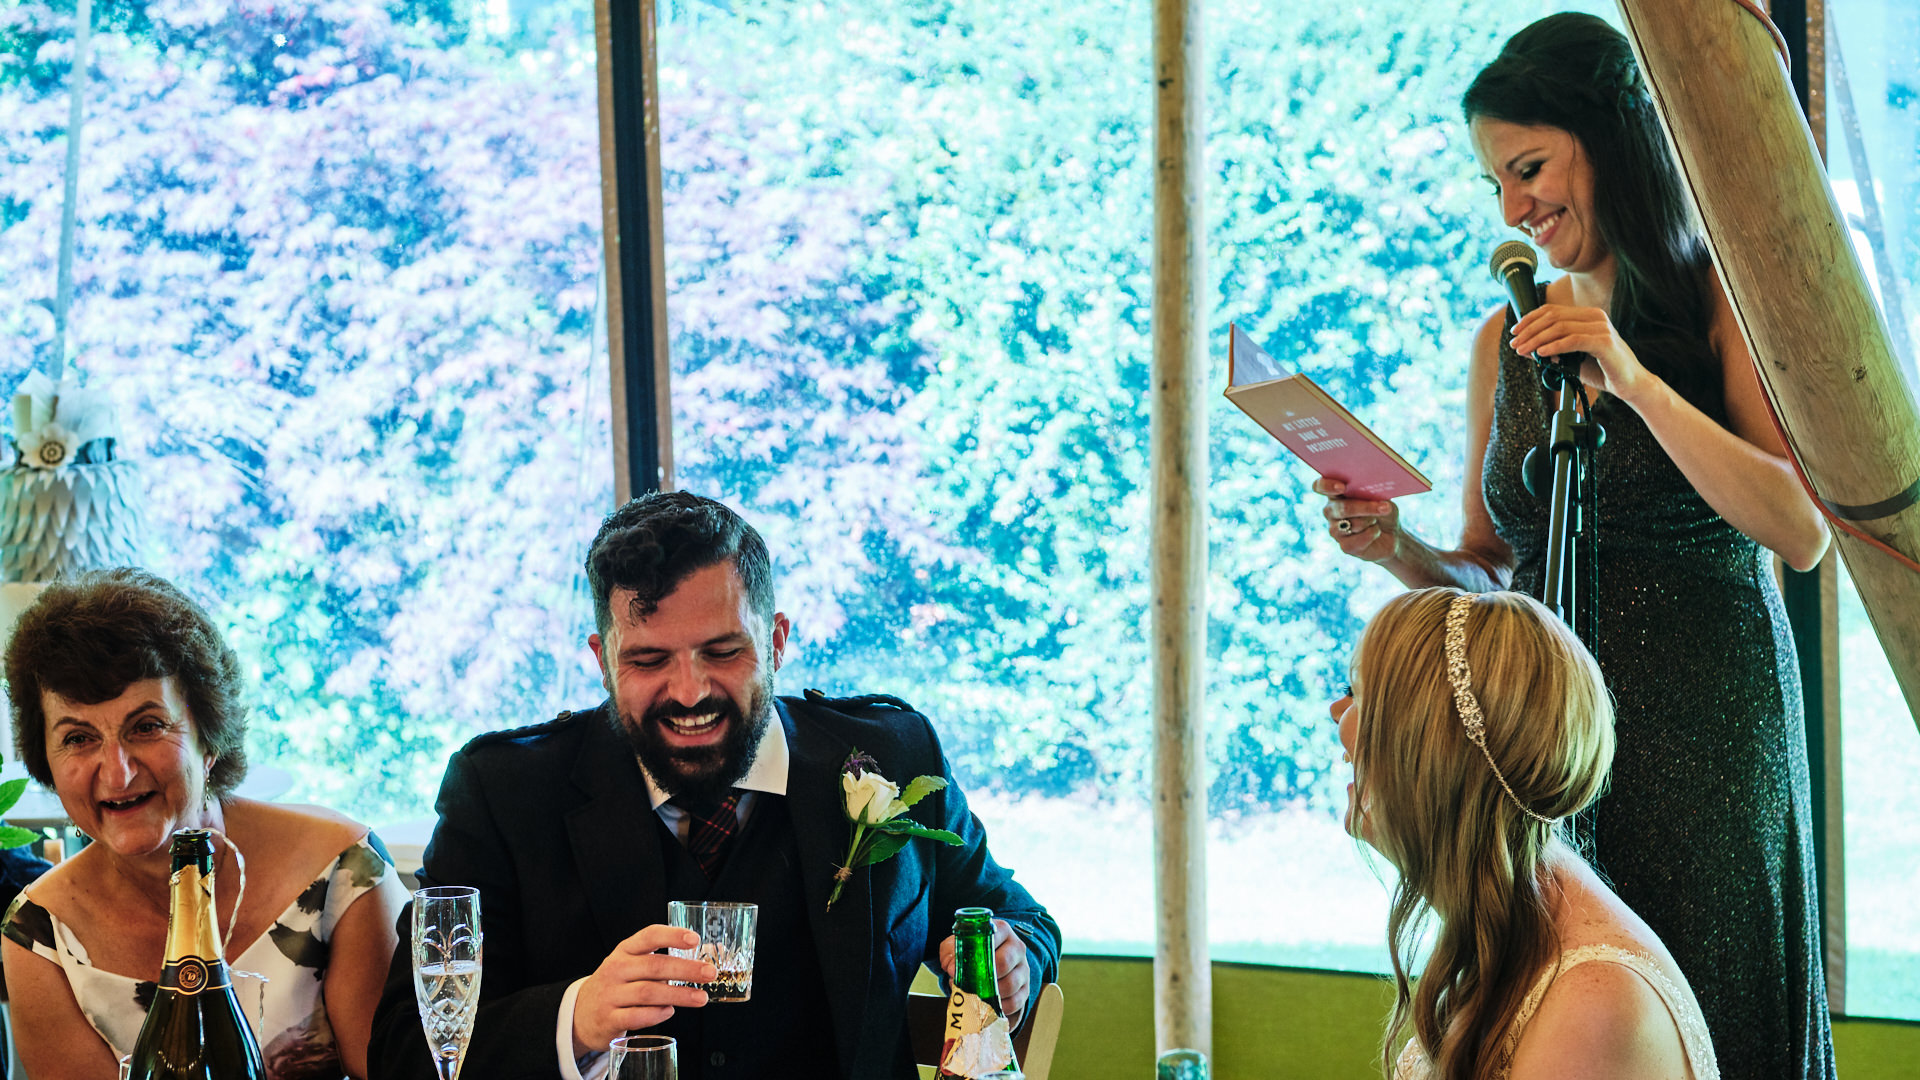 colour photograph of the chief bridesmaid giving a speech at a wedding while the wedding party are laughing